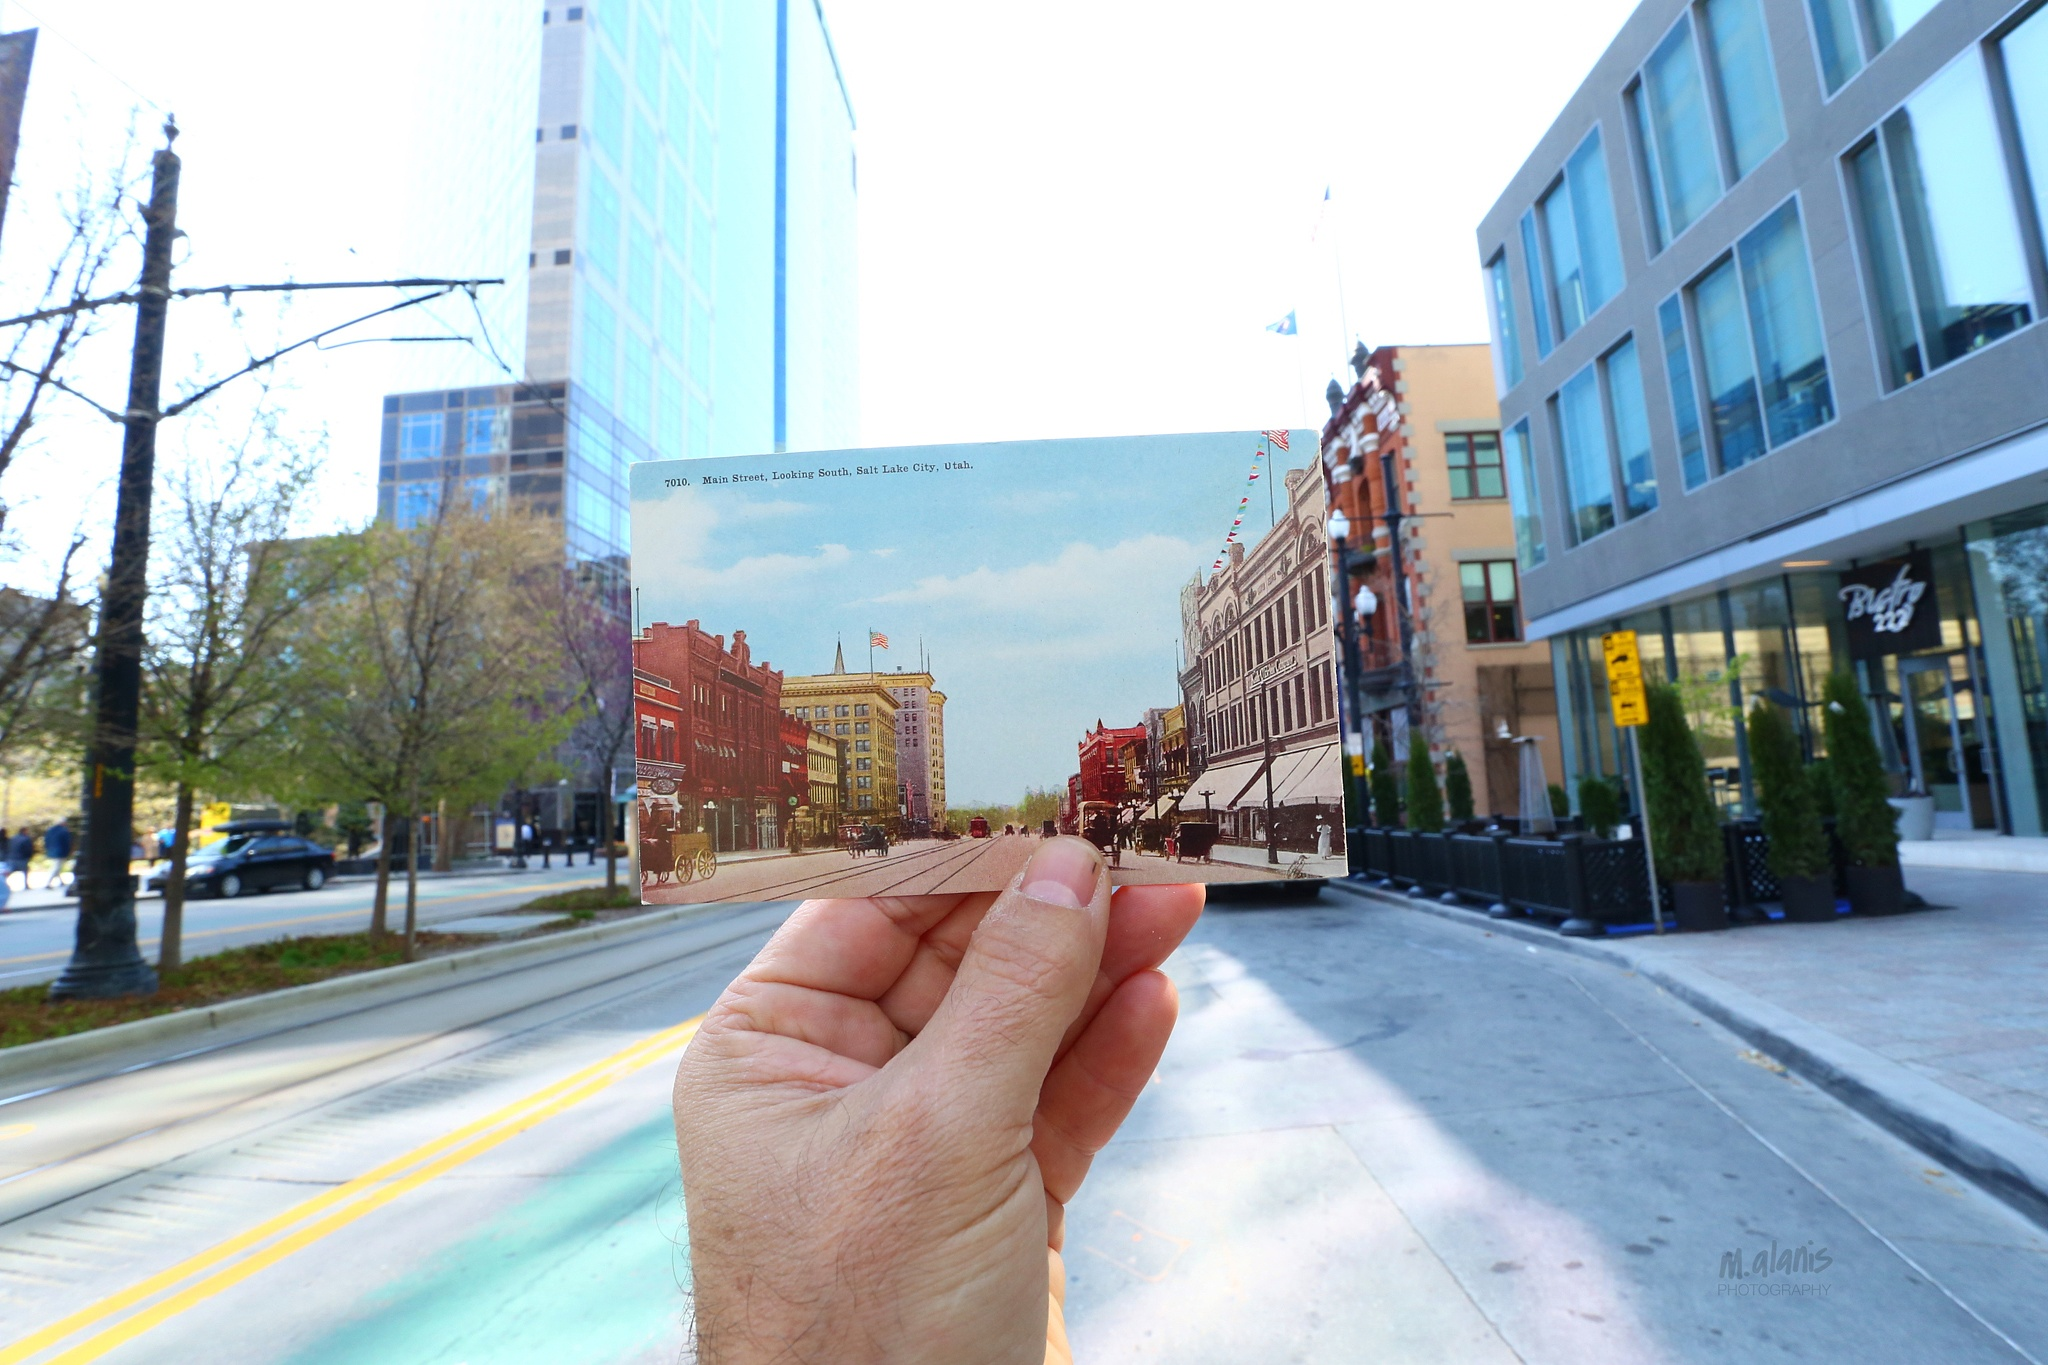 Postcard Project: Salt Lake City, Now & Then by Mauricio Alanis